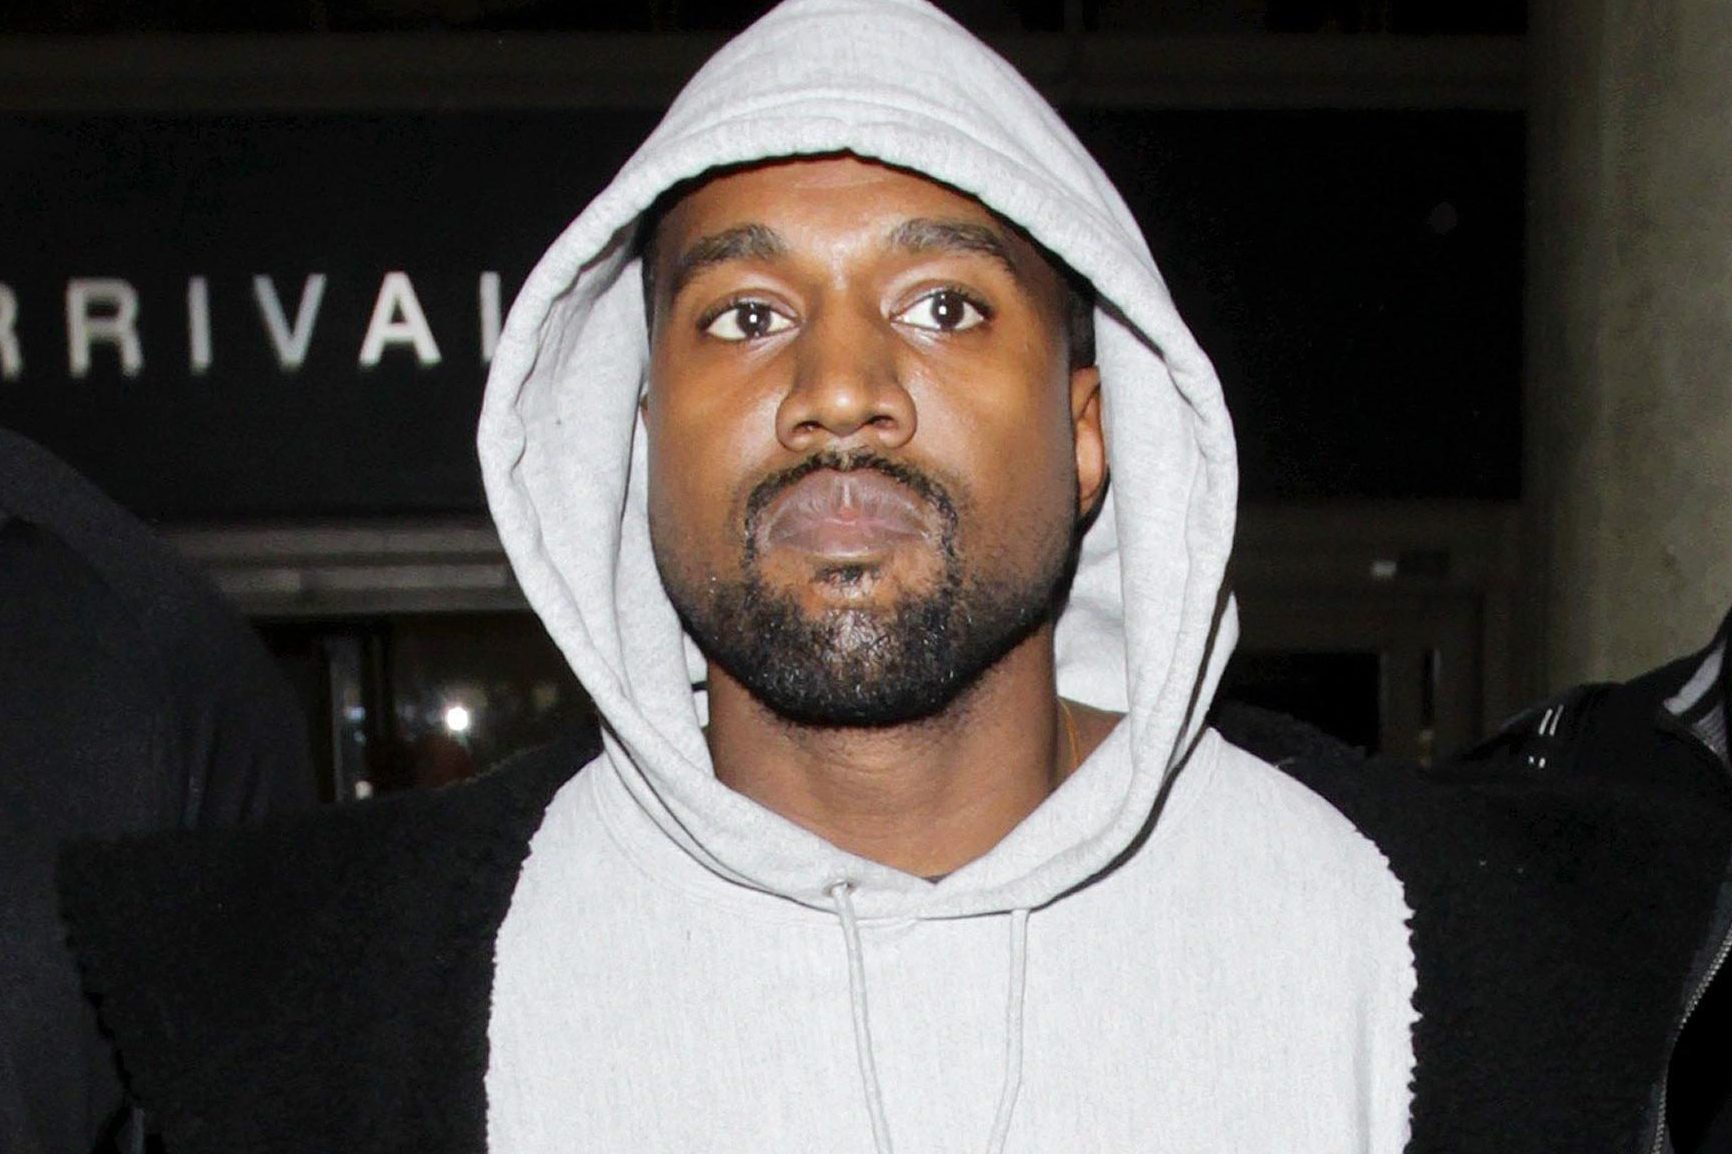 Kanye West sues Lloyd's for £7m after firm denies claim for gigs axed 'due to weed'